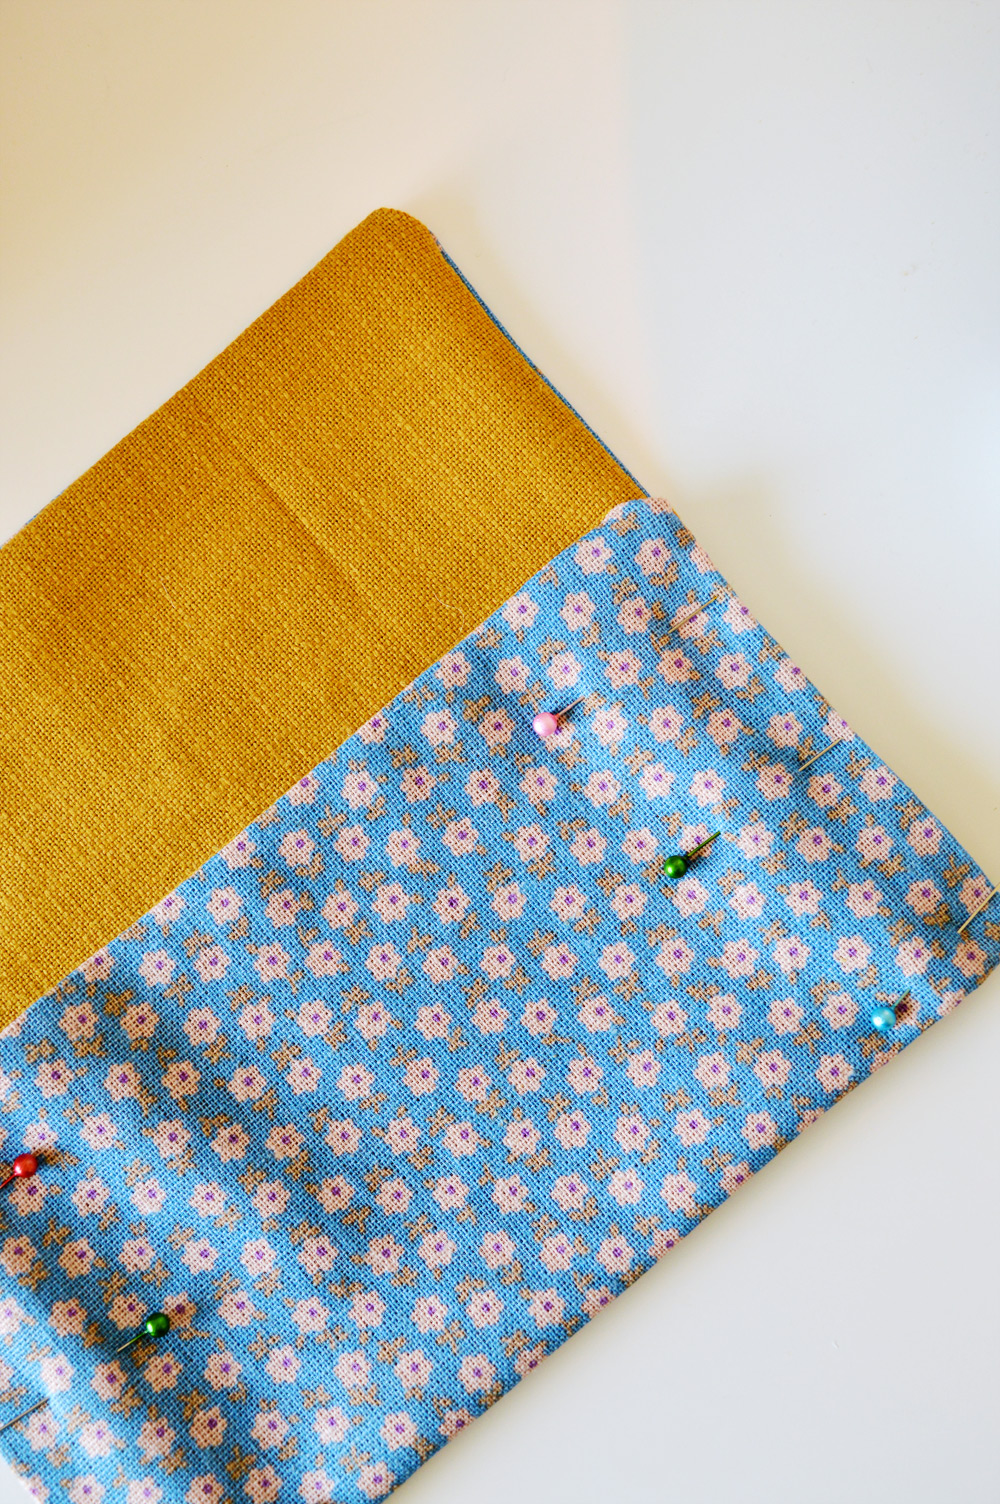 Fabric + #crochet clutch tutorial #sewing